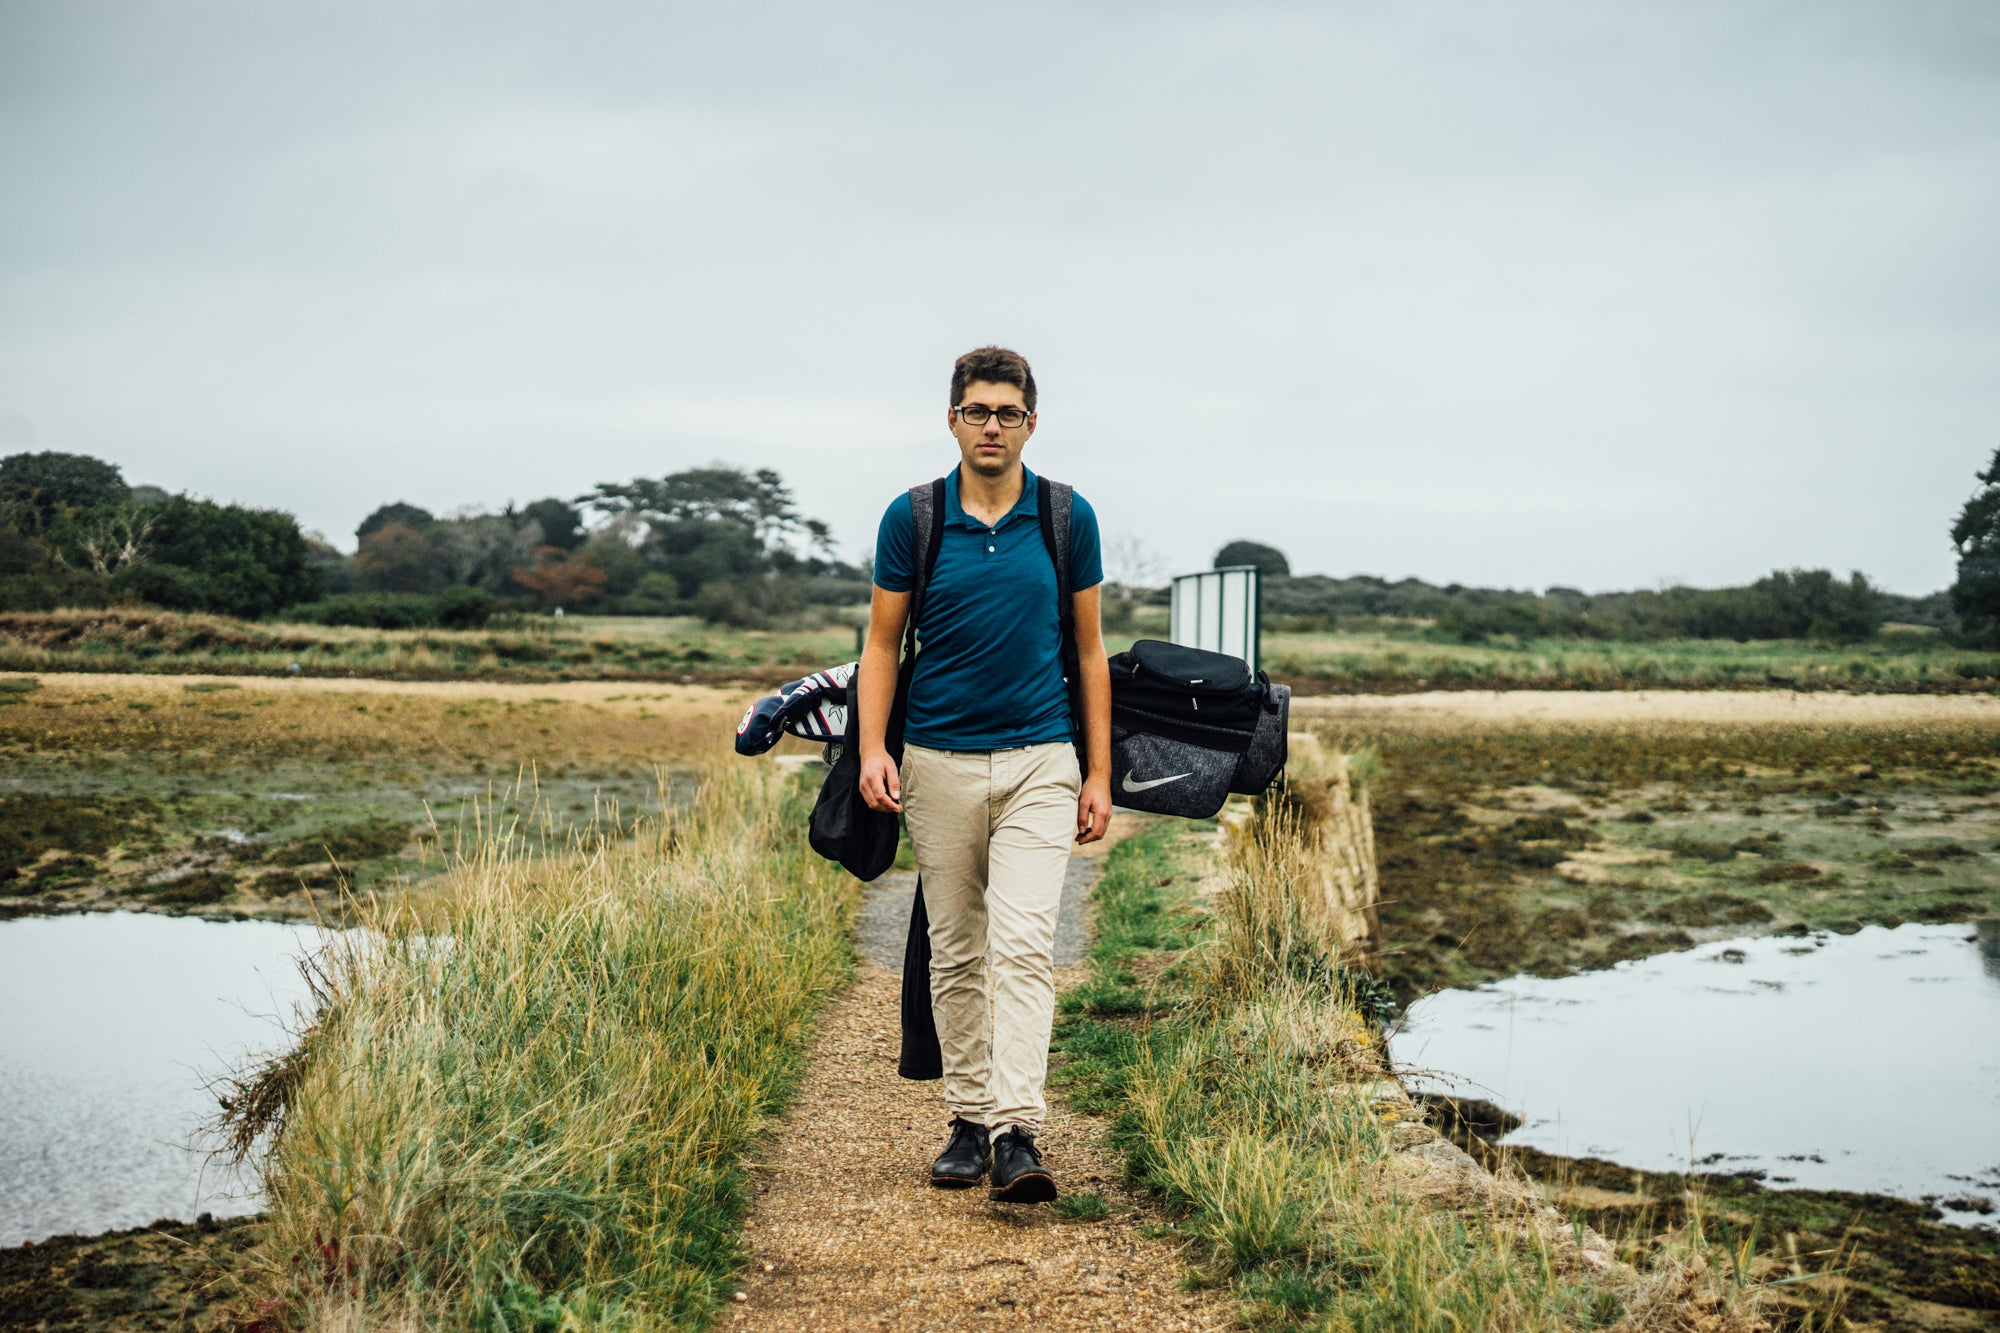 Golfer wearing the Signature Merino Golf Polo Shirt on the former linksland site of the Royal Isle of Wight Golf Club